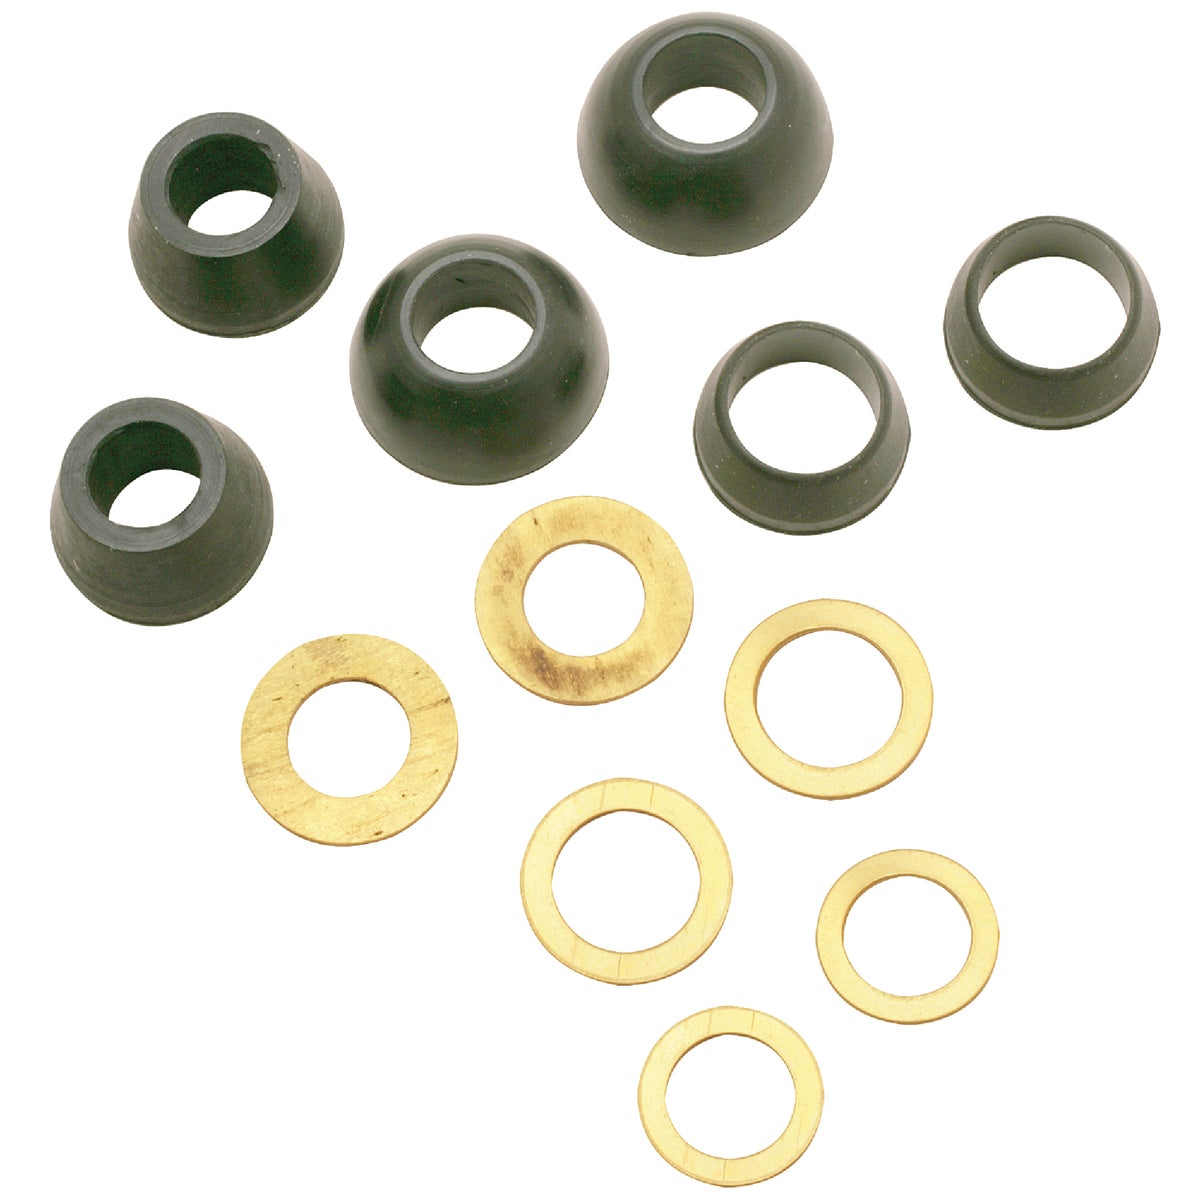 CONE WASHER ASSORTMENT - 420725 by Plumb Pak/keeney Mfg